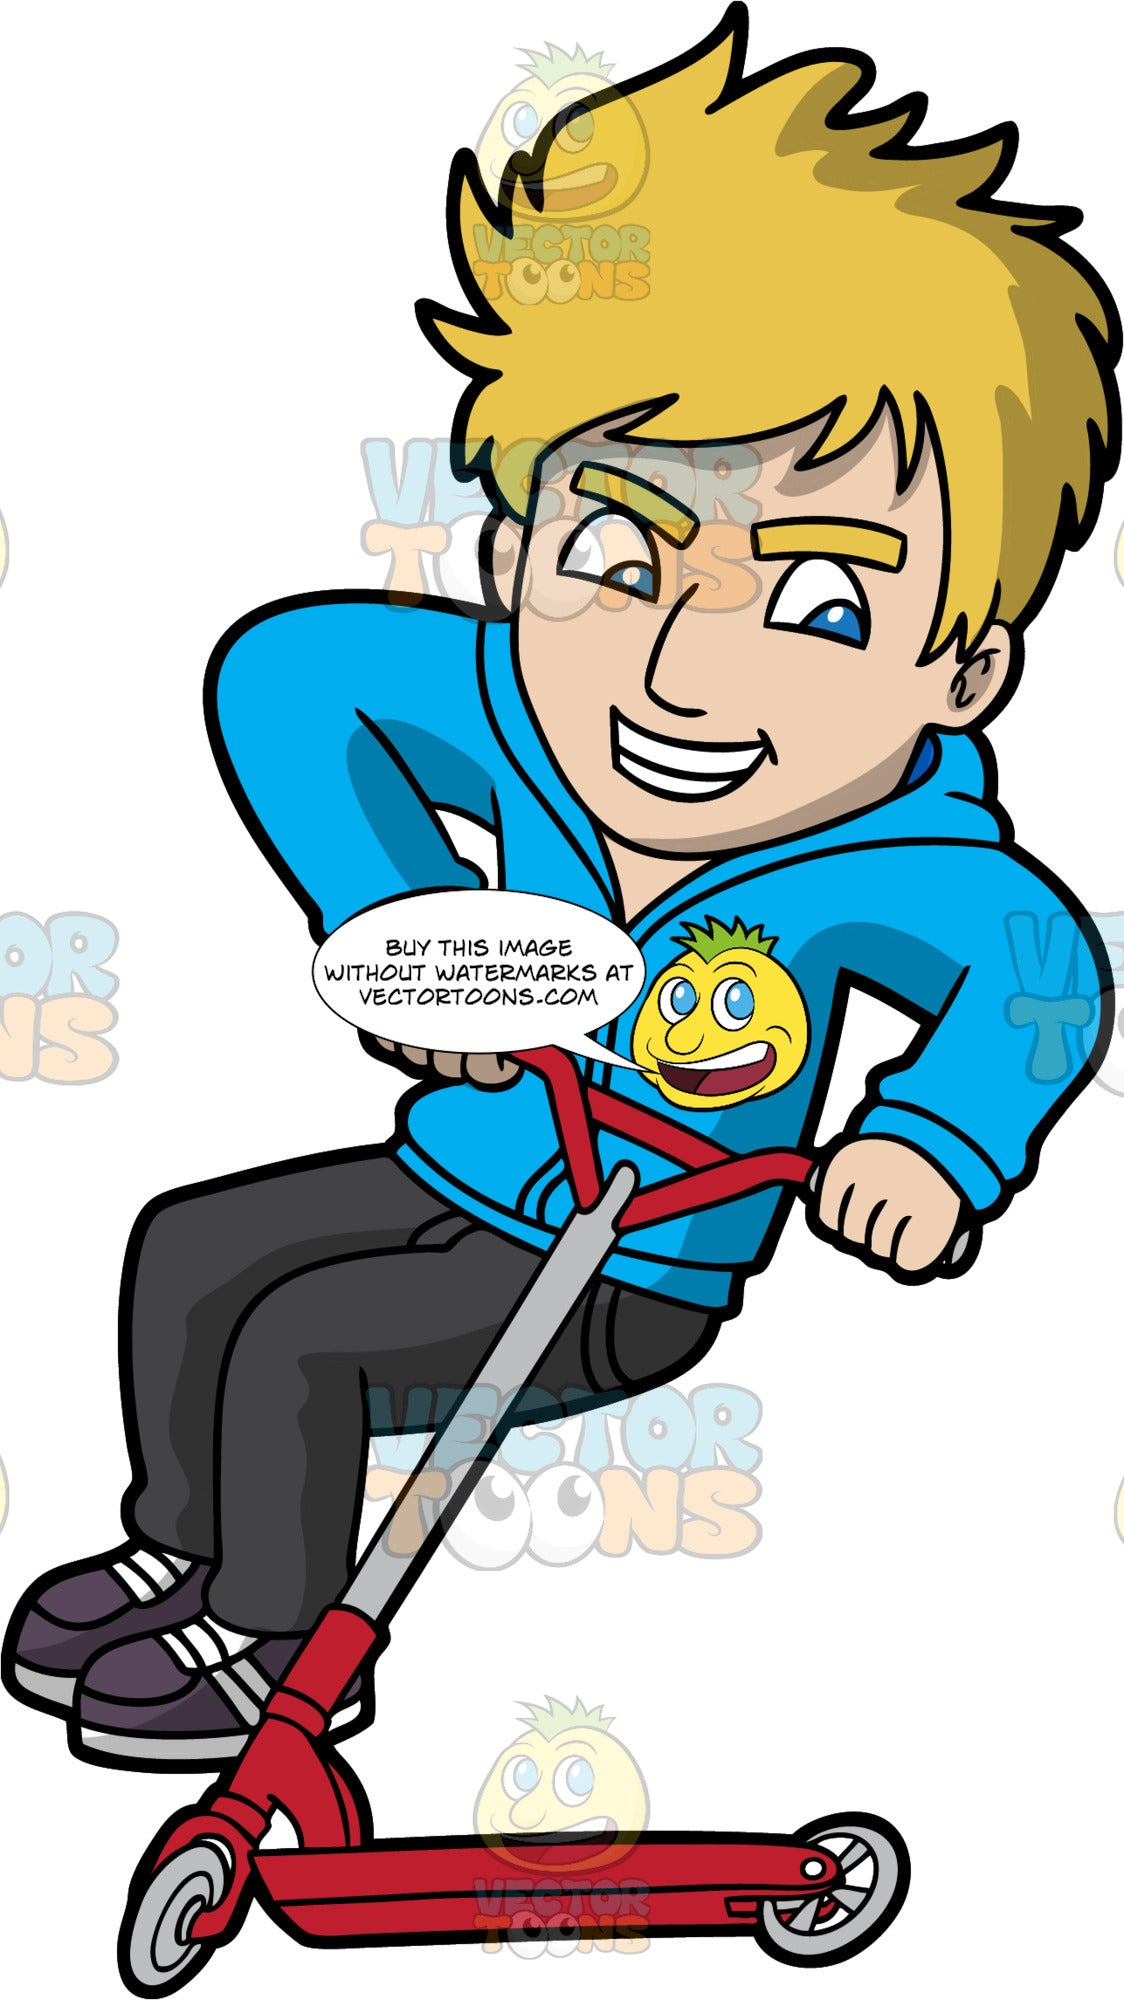 A Cool Man Riding A Scooter. A man with blonde hair, wearing a blue jacket with hood, black pants, dark brown with gray stripes, grins while jumping to ride a red with gray scooter